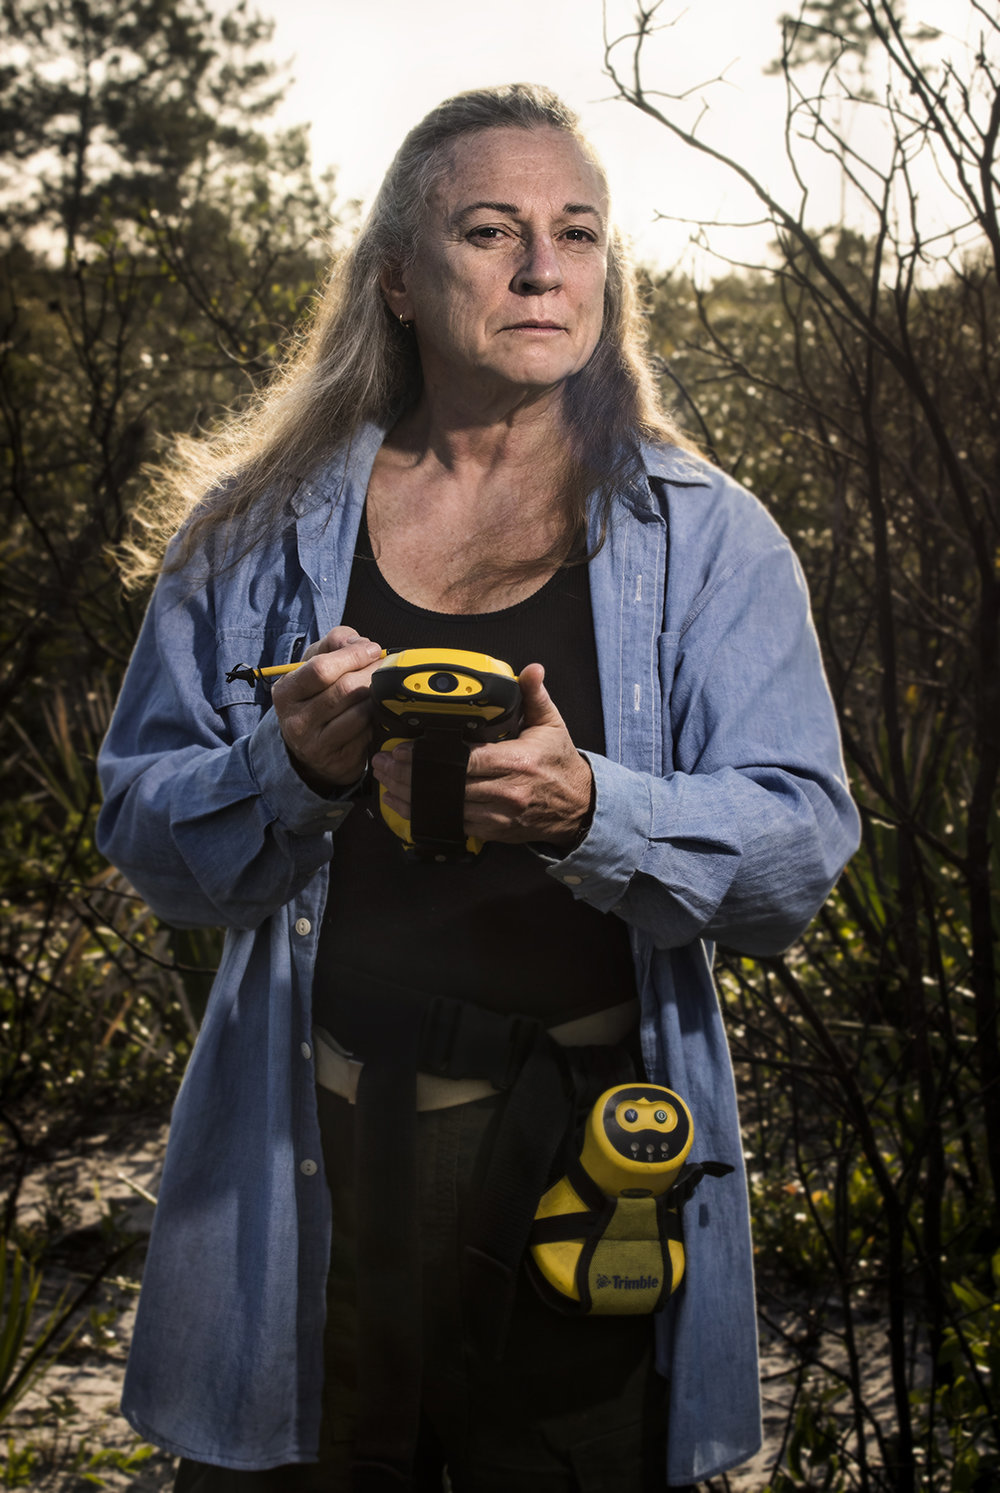 Roberta Pickert Mapping Specialist Archbold Biological Station 2015/2/2